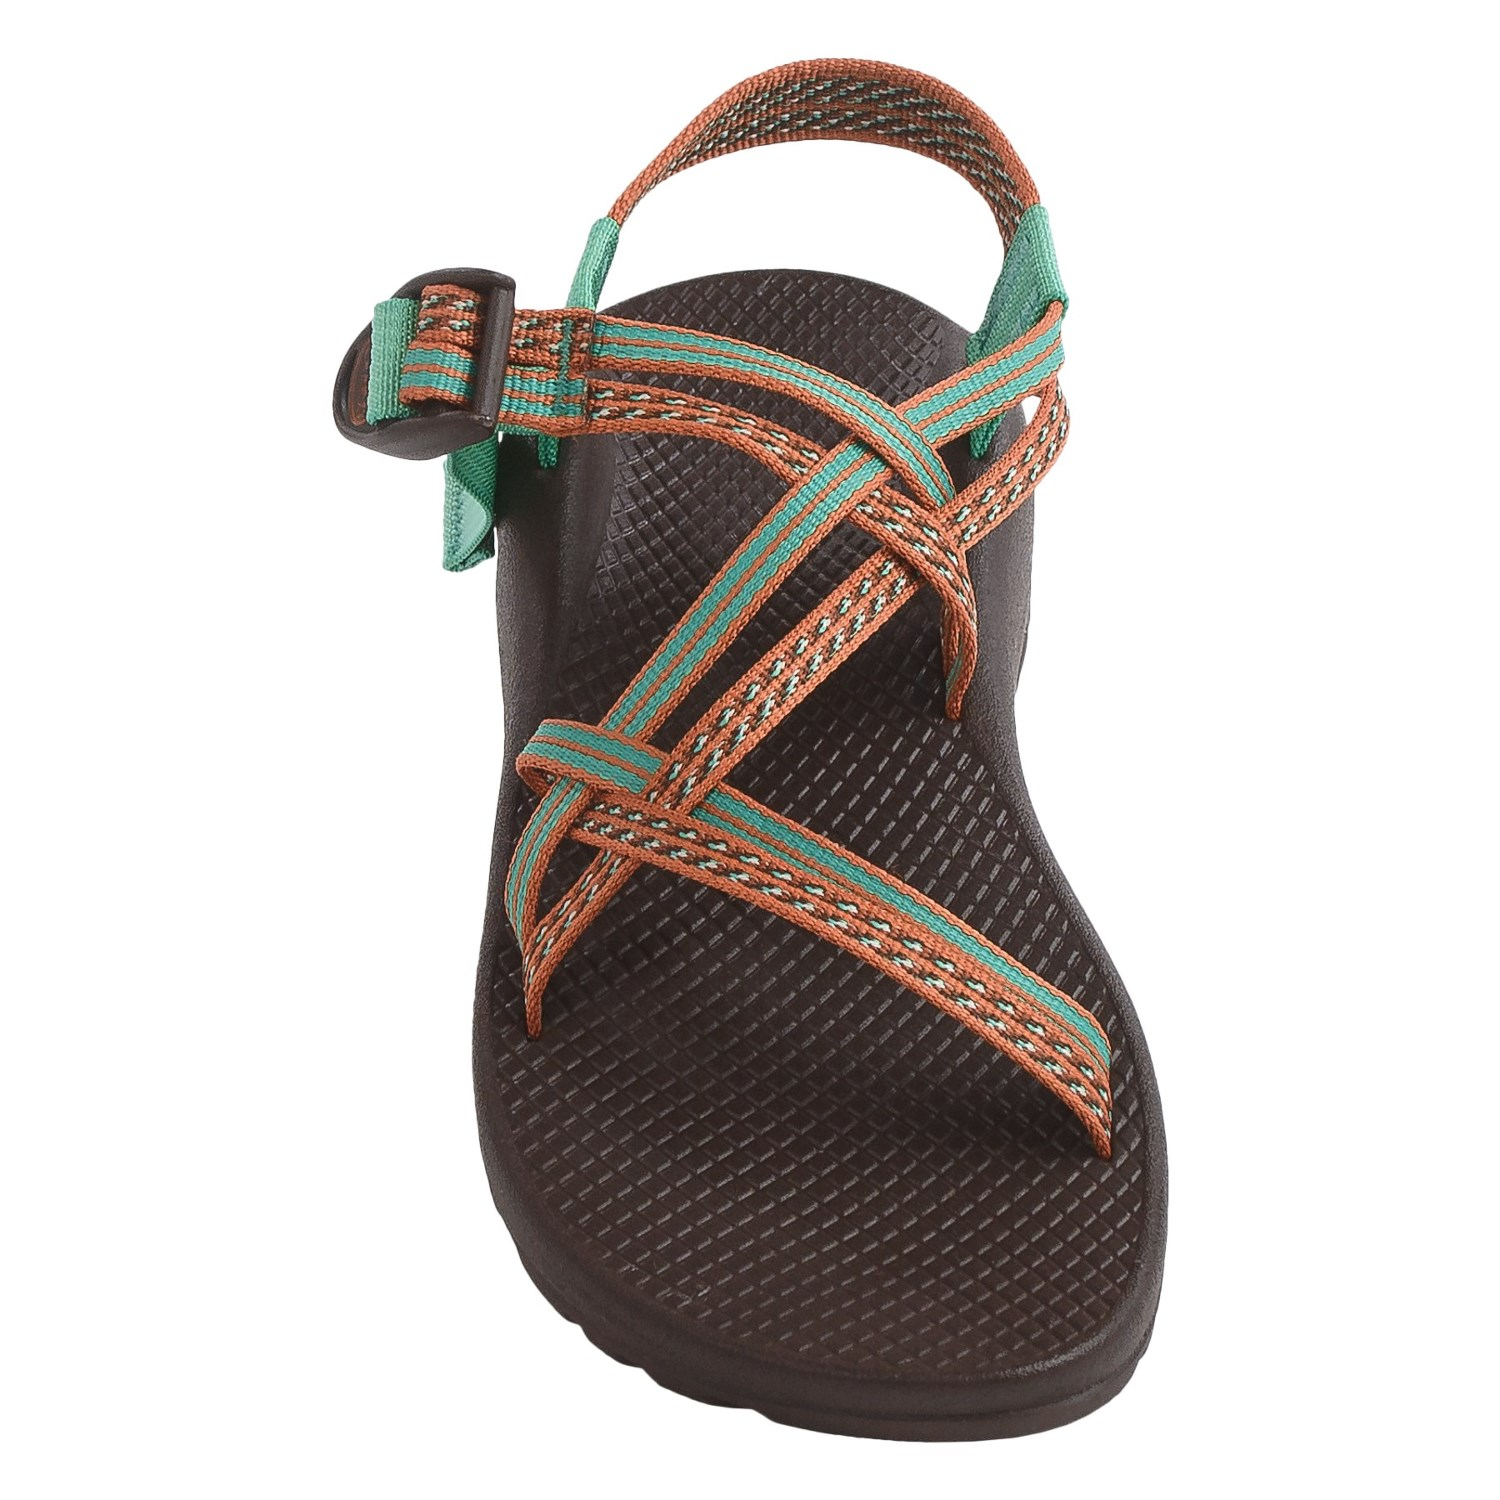 476f12d61721 Chaco ZX 1 Classic Sport Sandals (For Women) - Save 42%